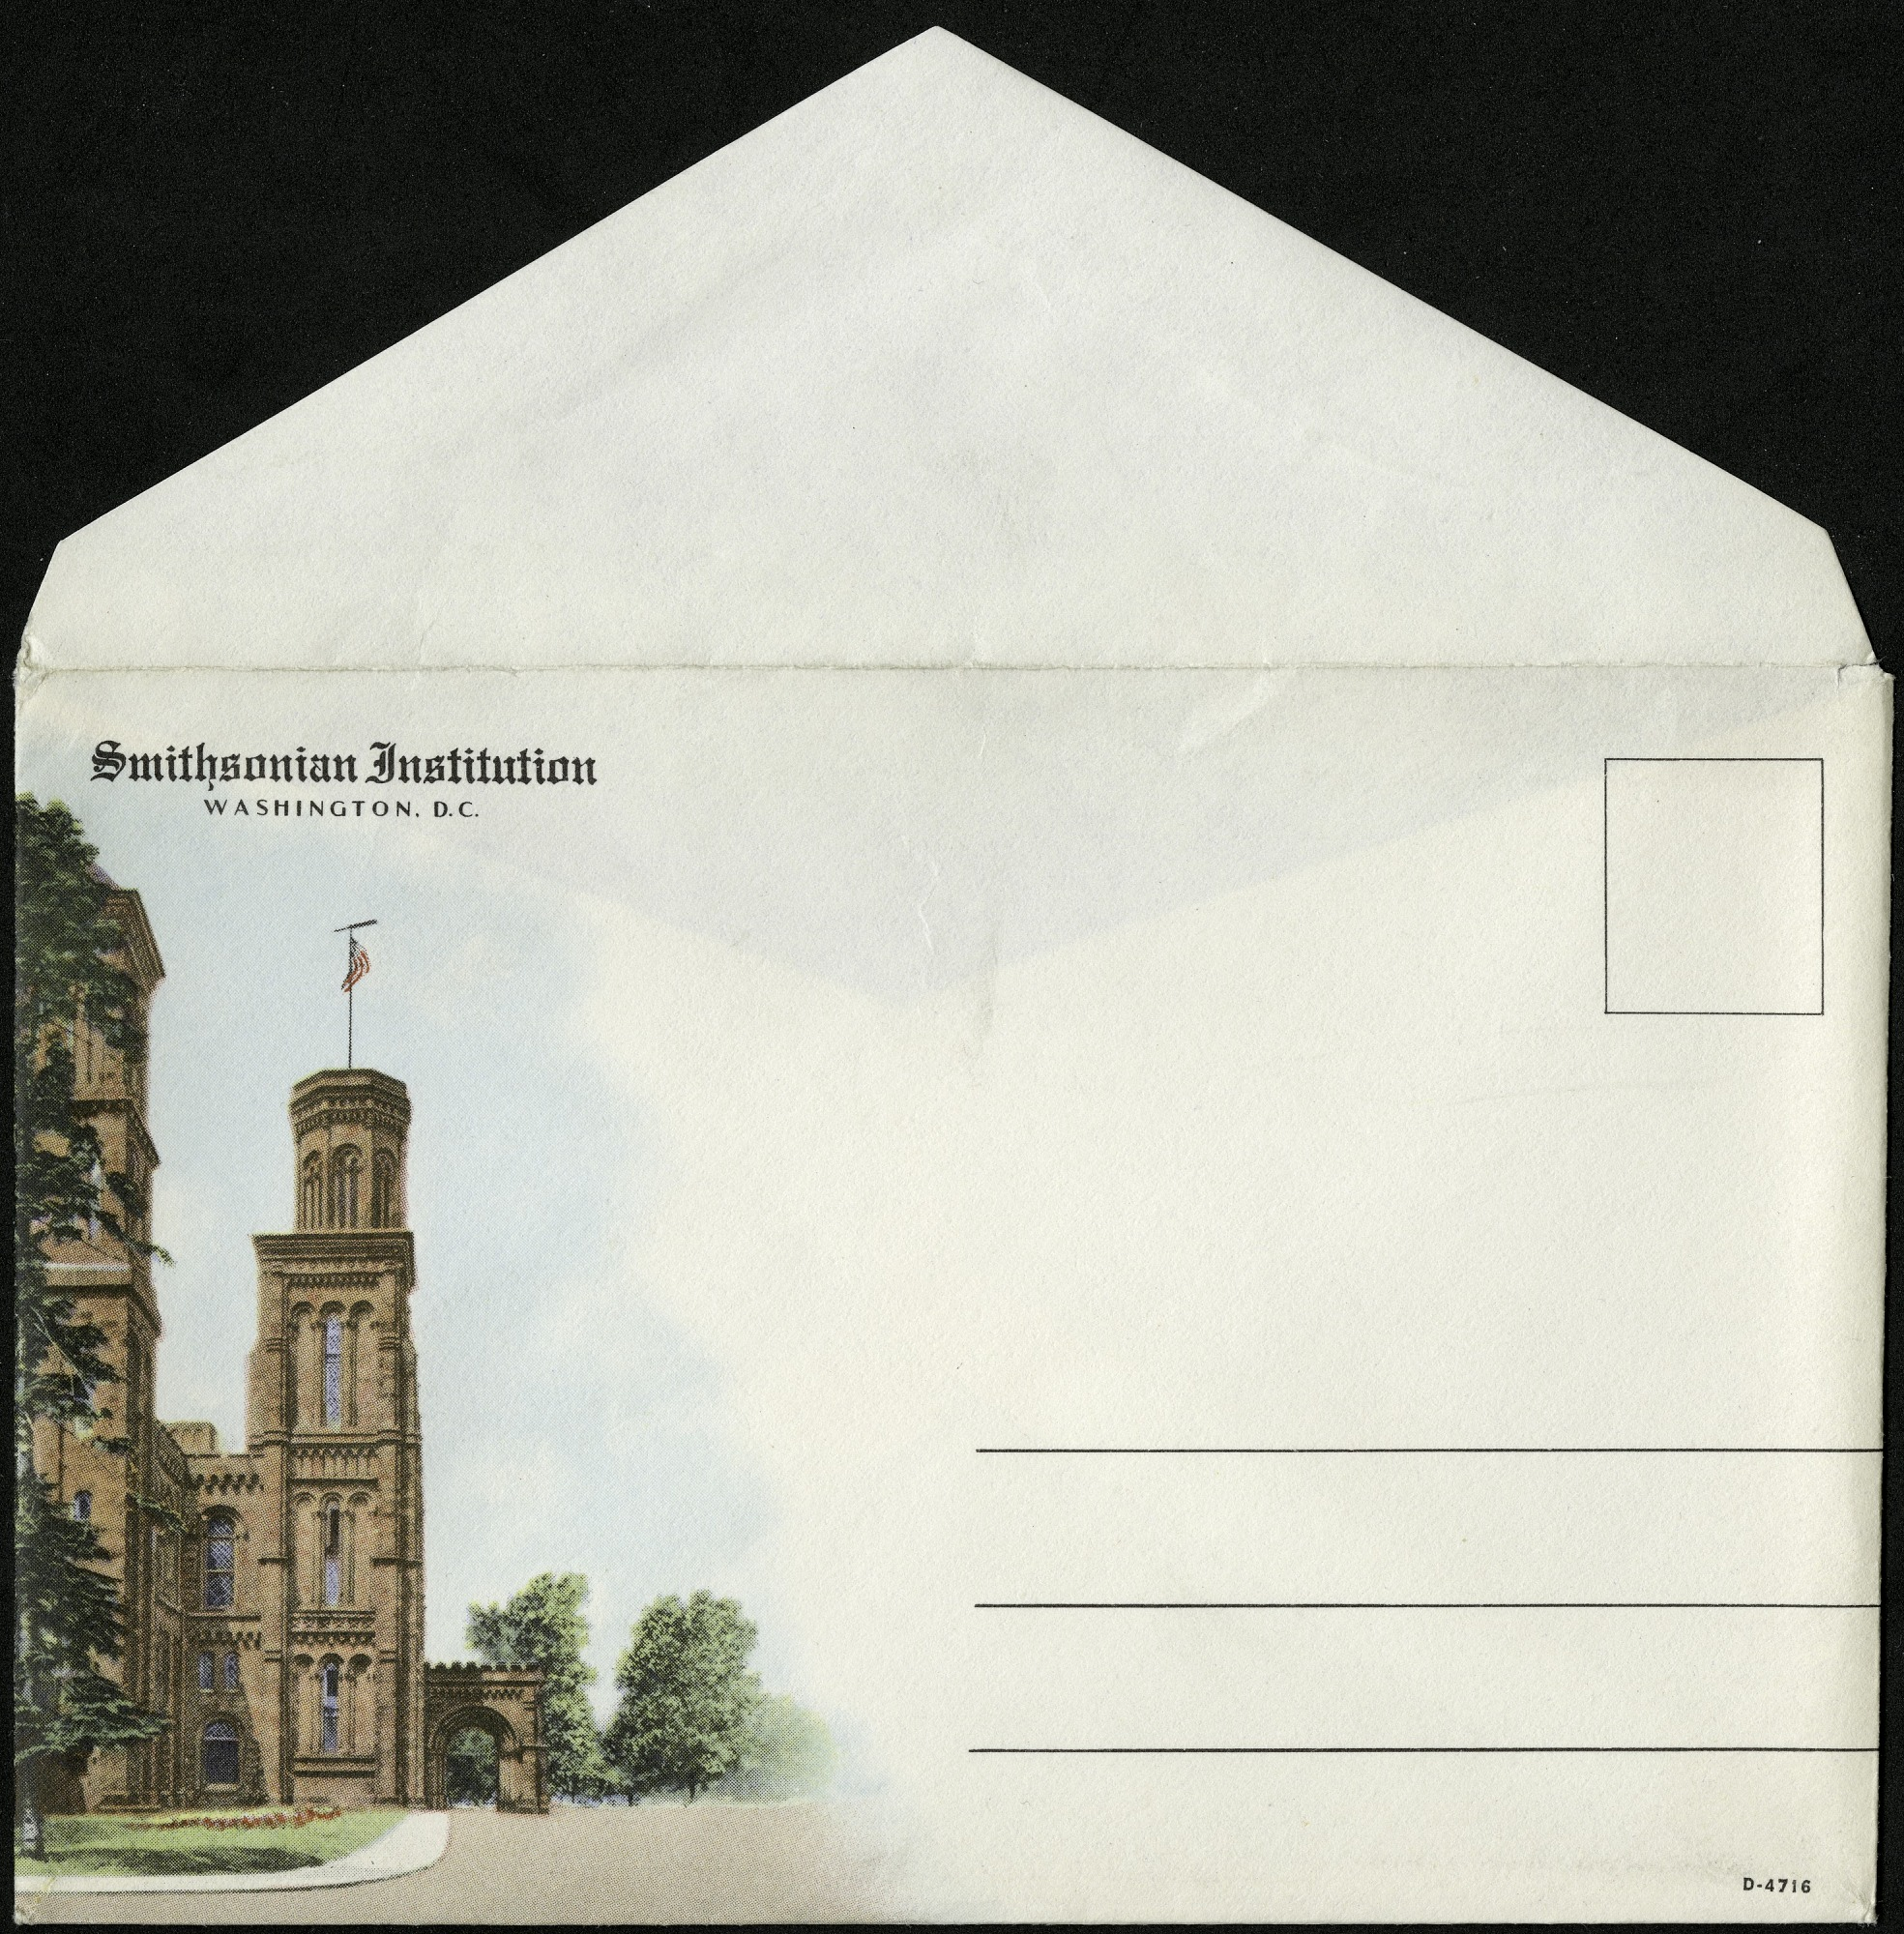 Postcard Envelope with Image of Castle, by Curt Teich & Co, 1936, Smithsonian Archives - History Div, SIA2013-07811.